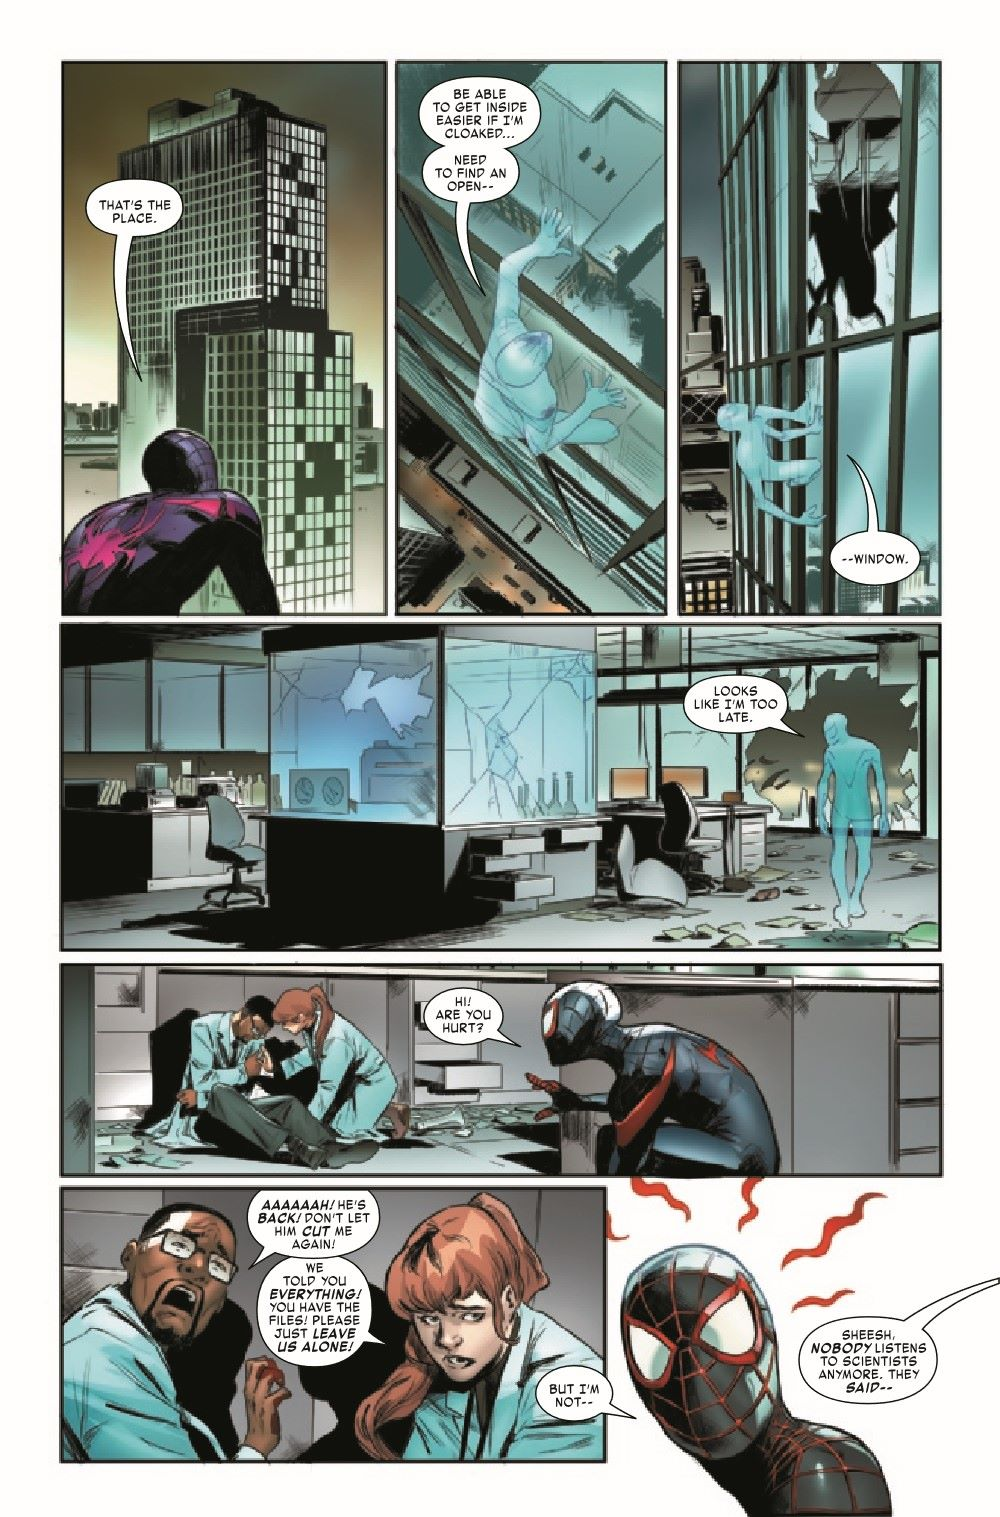 MMSM2018025_Preview-5 ComicList Previews: MILES MORALES SPIDER-MAN #25